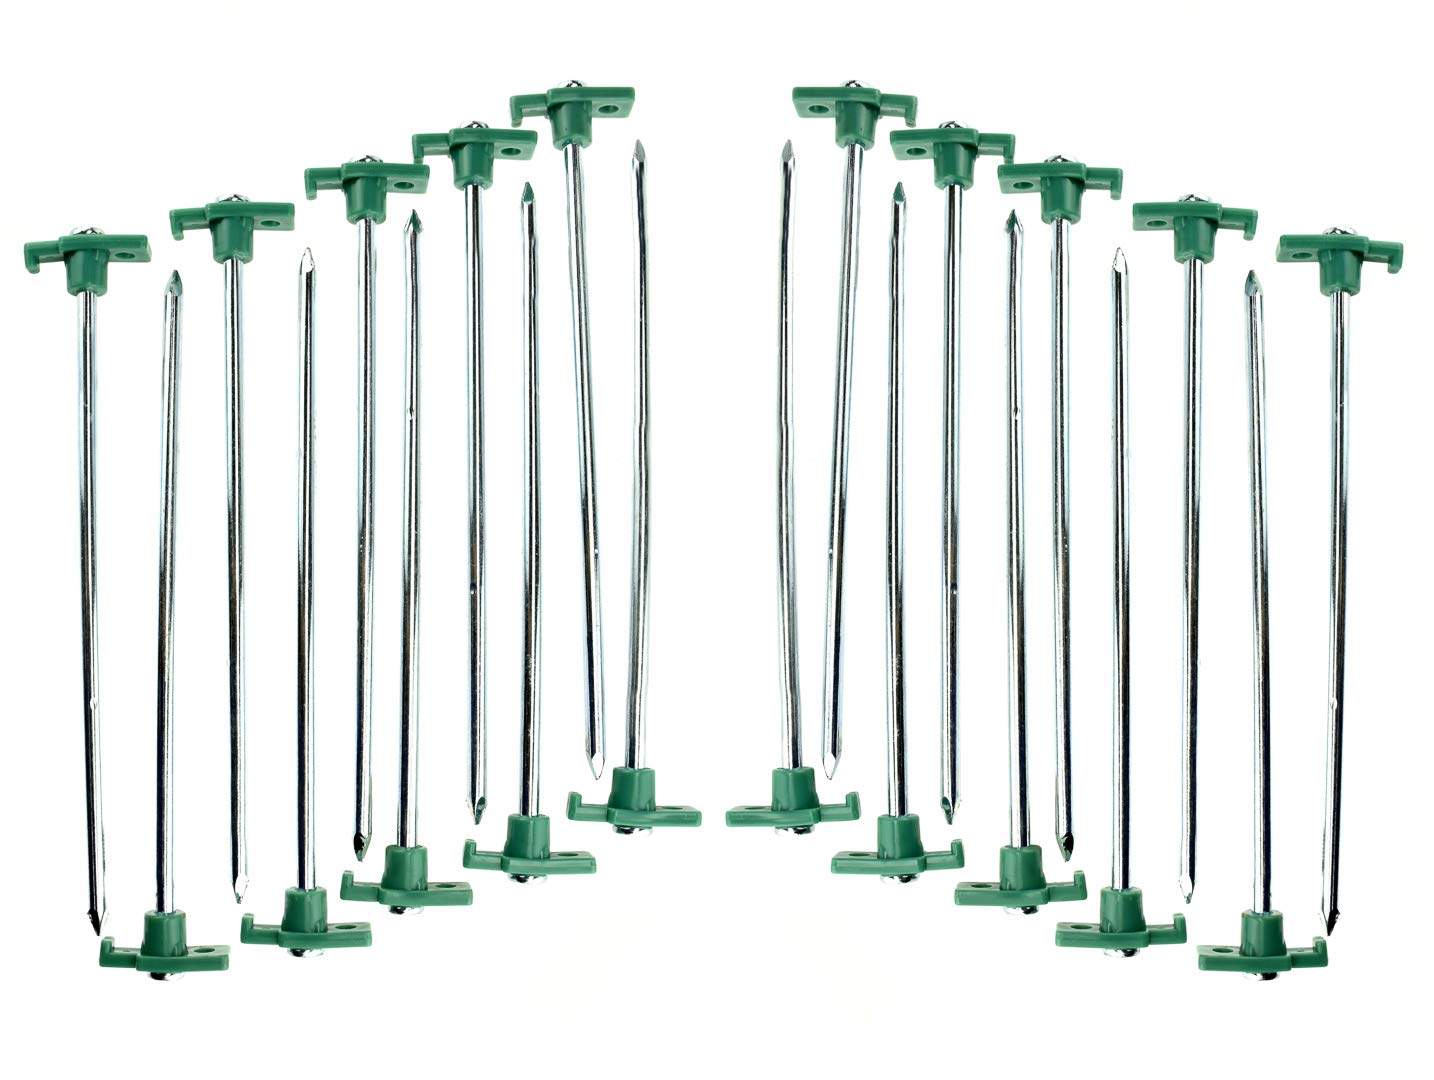 SE 9NRC10-20 Heavy-Duty Metal Tent Pegs Stake Set (20-Pack) by SE